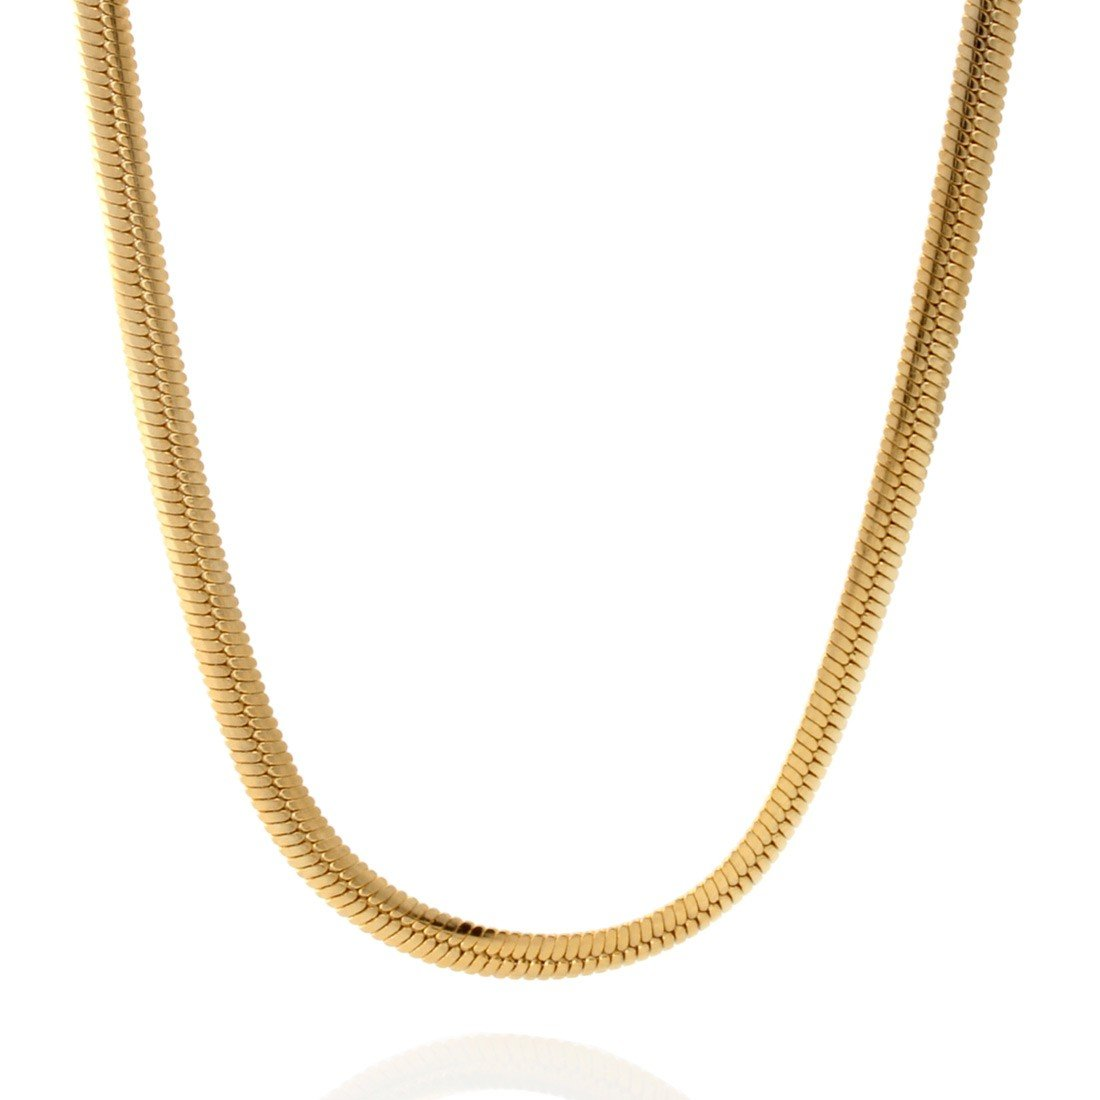 55 45 30 40 15 60cm 50 4mm thick 14k gold plated on solid sterling silver 925 Italian Herringbone chain necklace bracelet anklet with lobster claw clasp jewelry 20 25 35